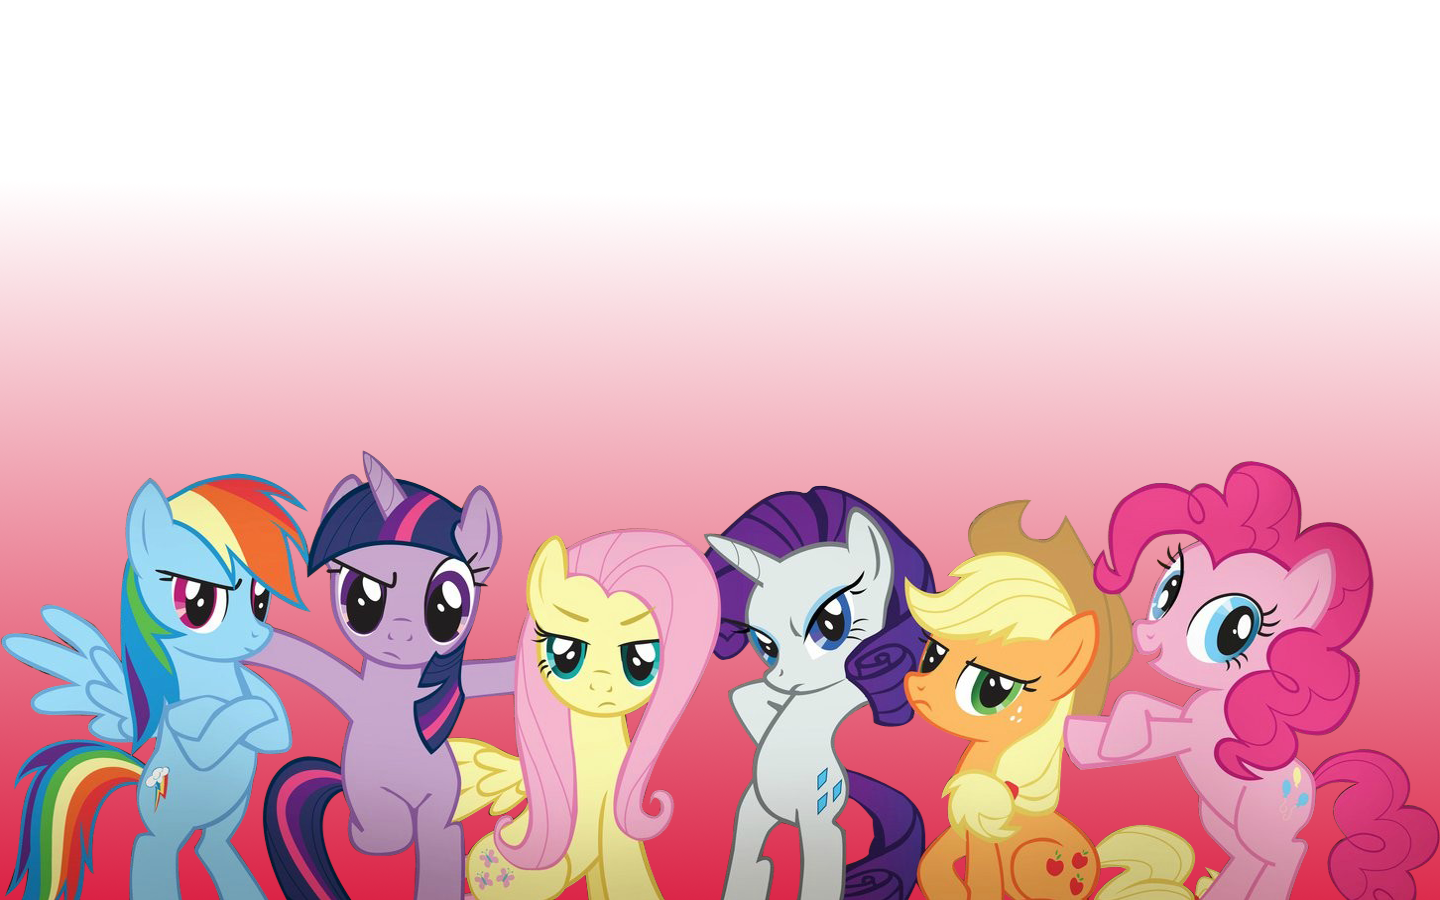 Imagen - My little pony spotlight.png | Comunidad Central | FANDOM ...